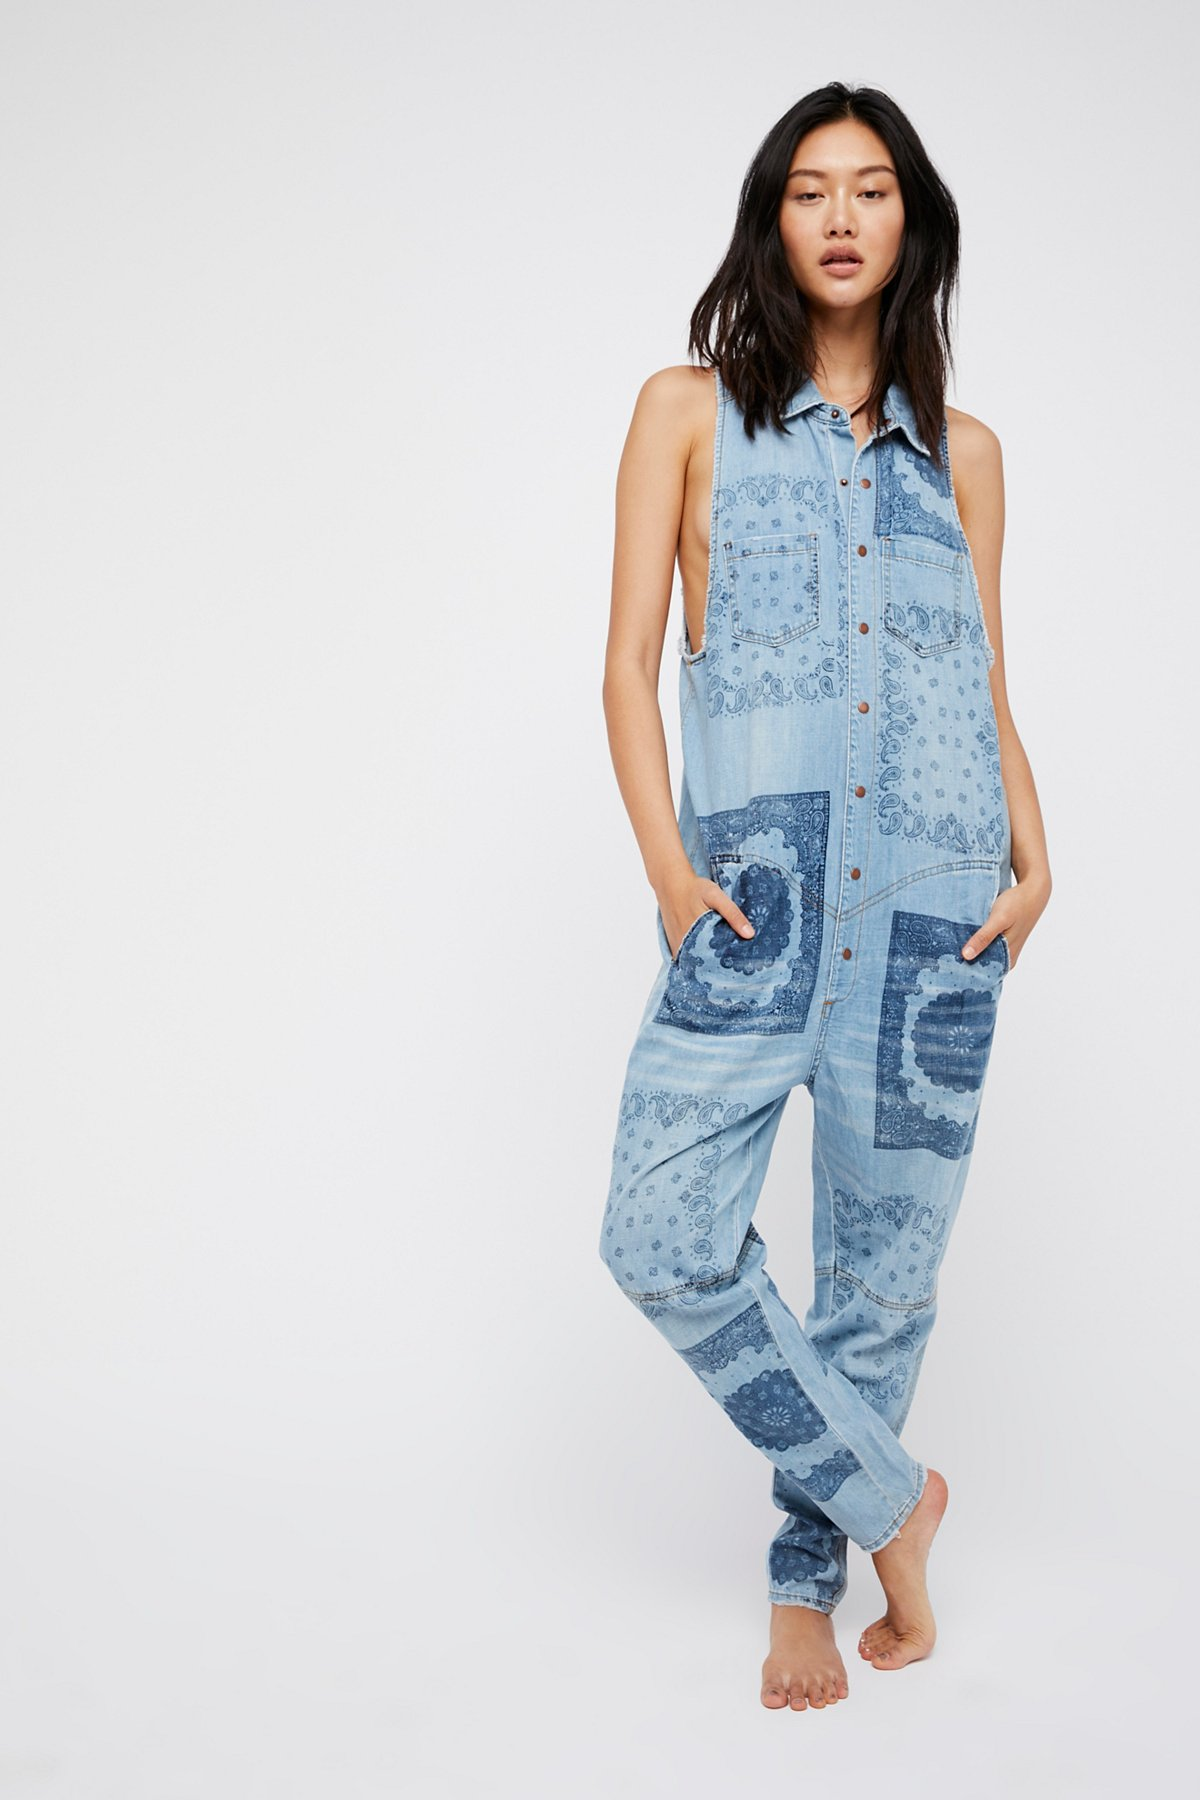 Off Beat Braxton Utility One-Piece